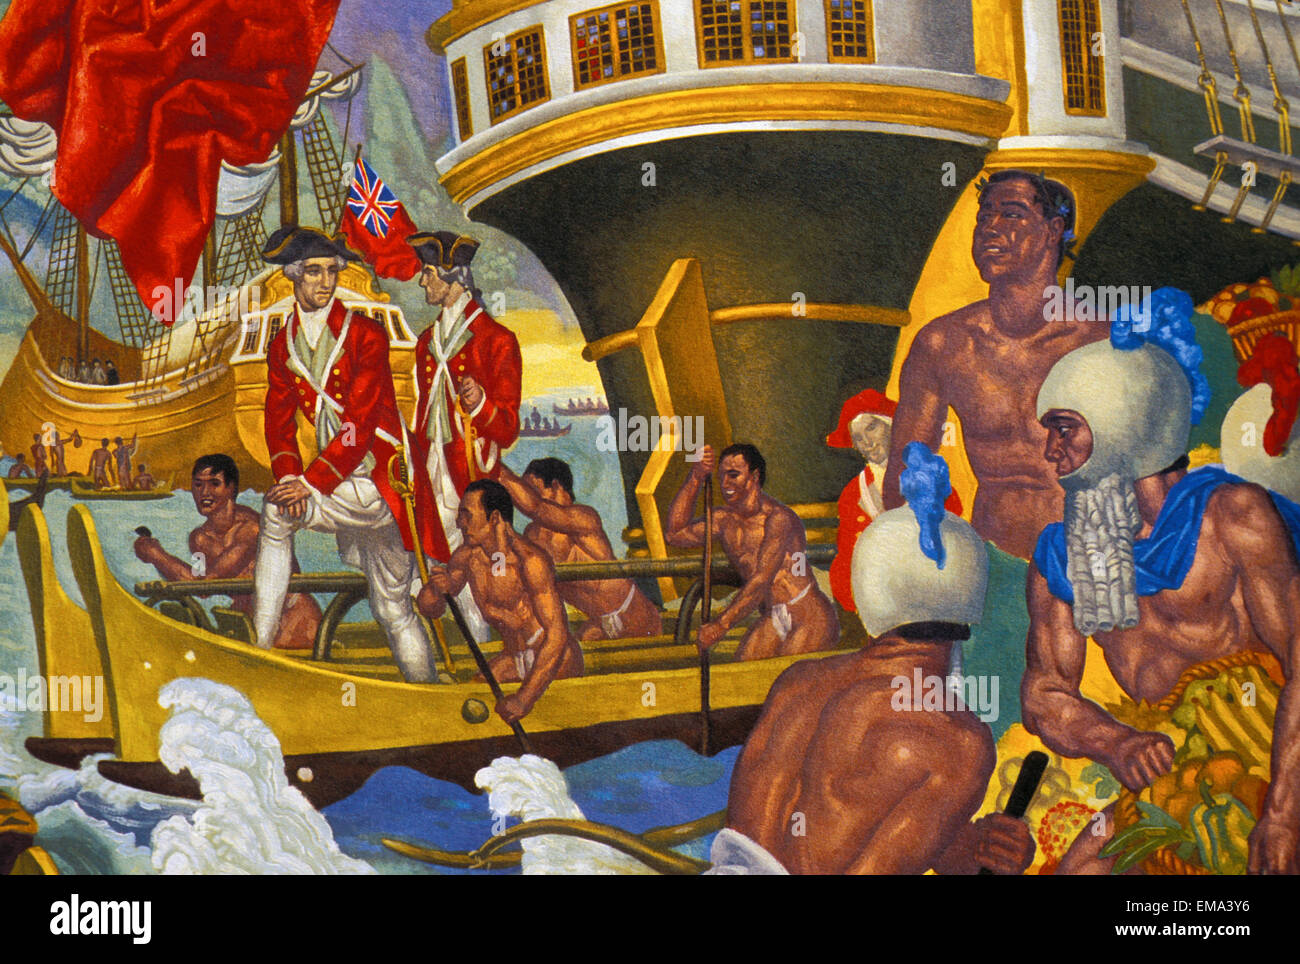 Painting of explorers in a boat Stock Photo